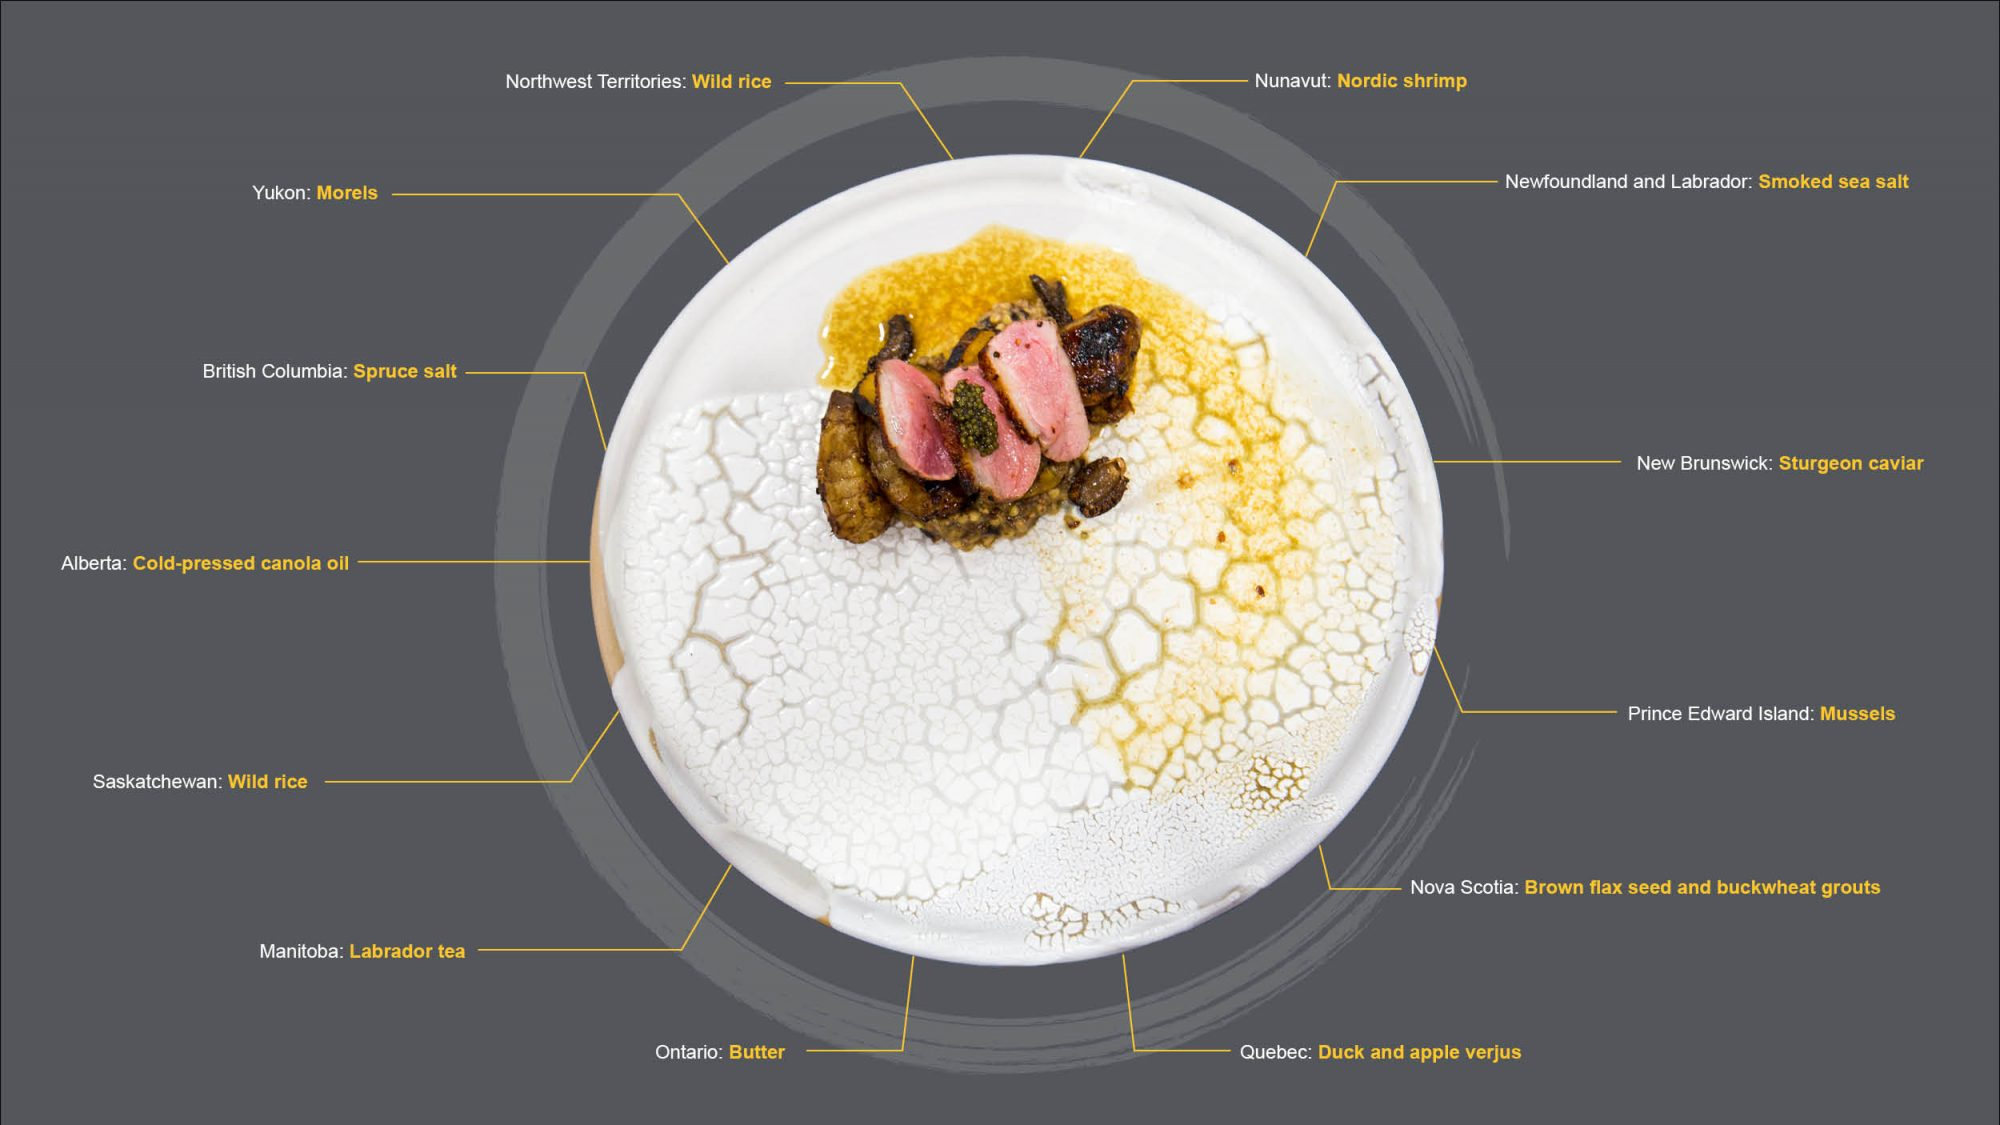 A diagram including an image Chef Josh's plate, with text references to each ingredient and where they are from. Ingredient lists at the bottom of the webpage.